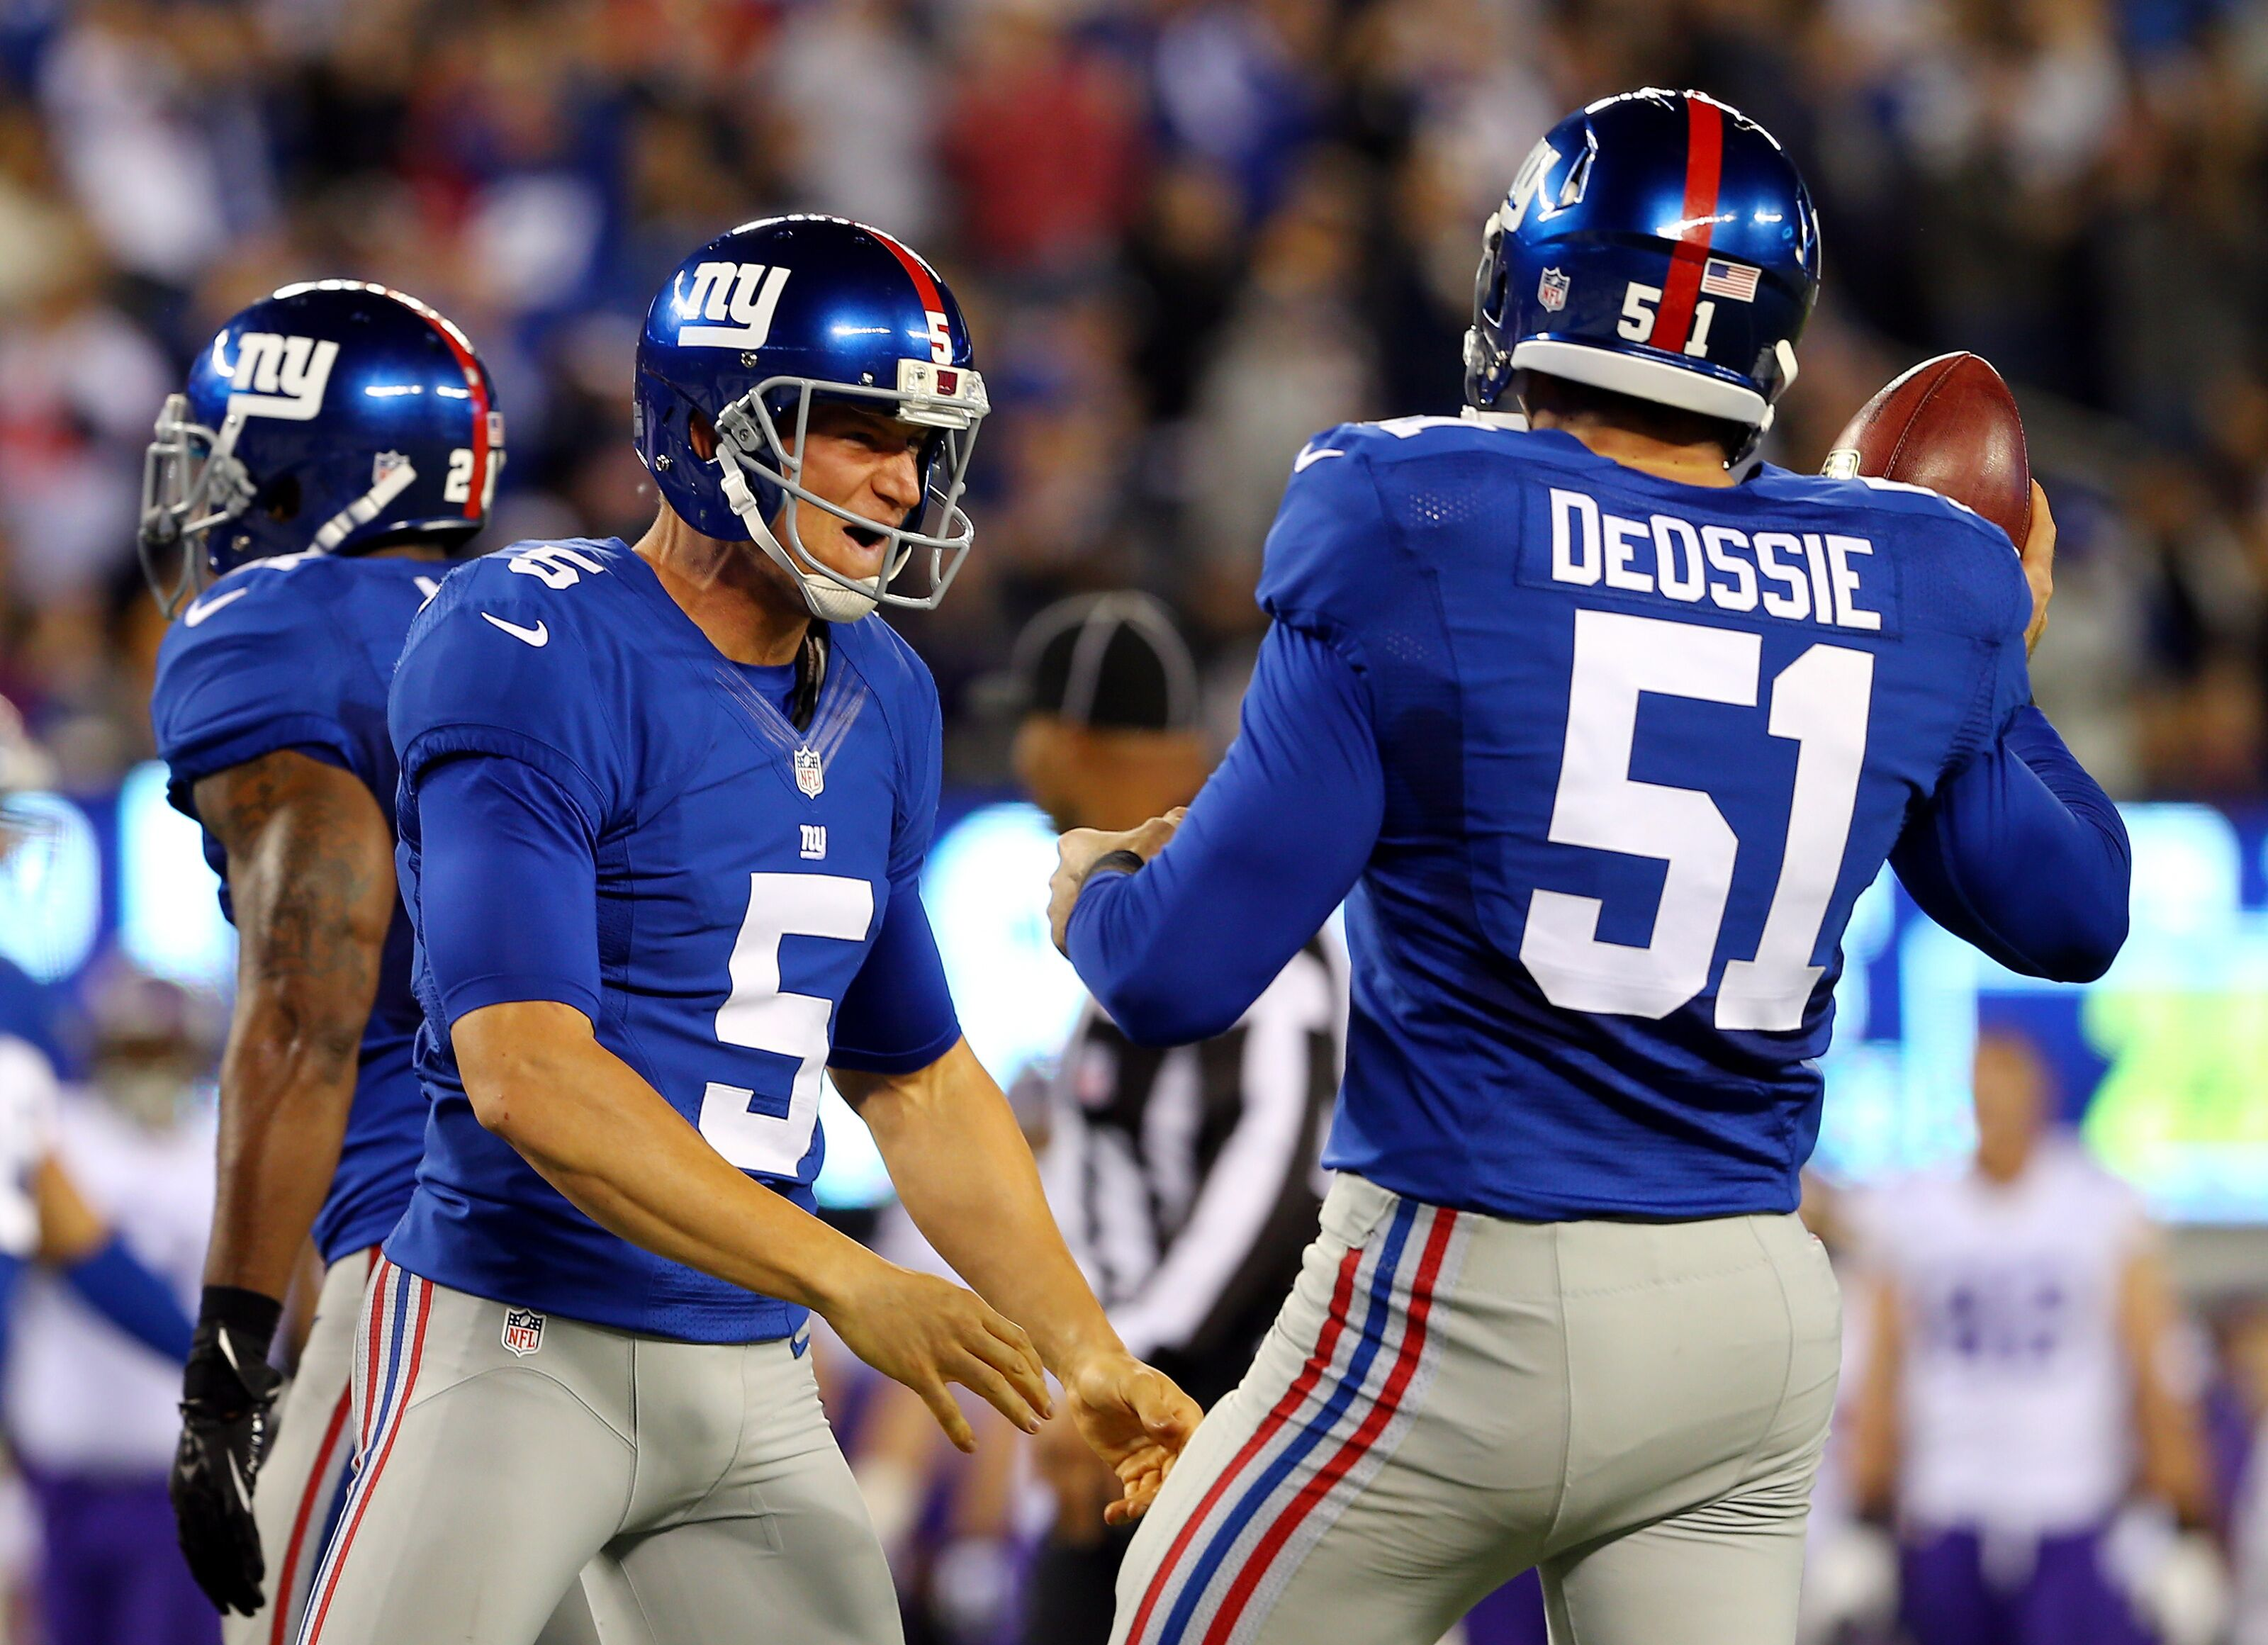 New York Giants: Top 10 value draft picks of the last 20 years